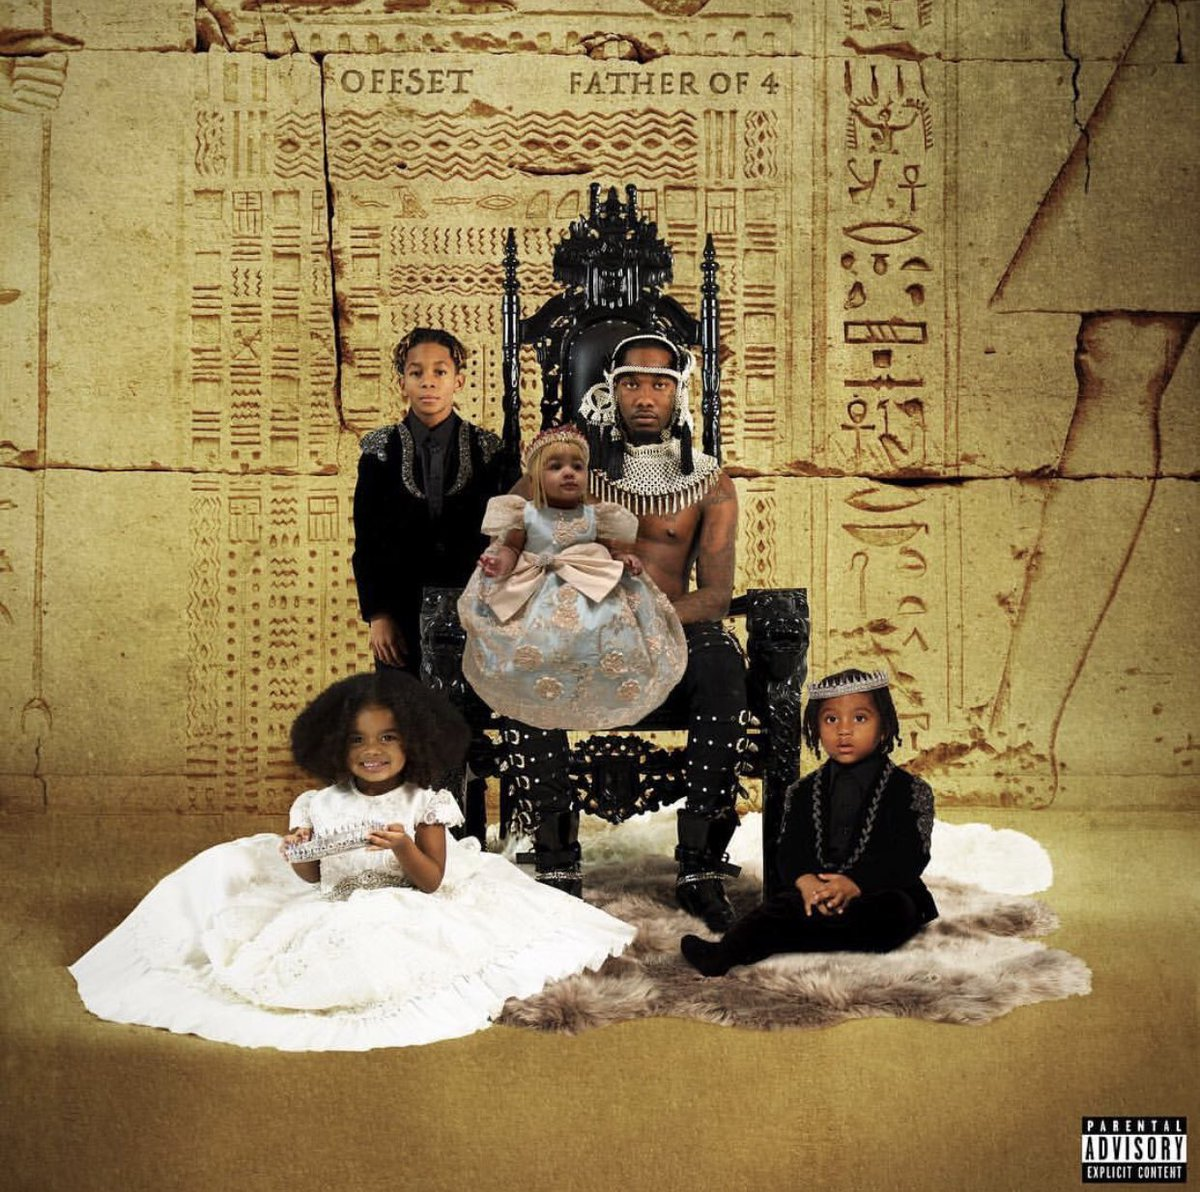 """Last night Atlanta artist Offset &amp; Gunna dropped their first solo albums. Offset released """"Father of 4"""" and Gunna drops, """"Drip or Drown 2"""". <br>http://pic.twitter.com/OYbY9OROEe"""